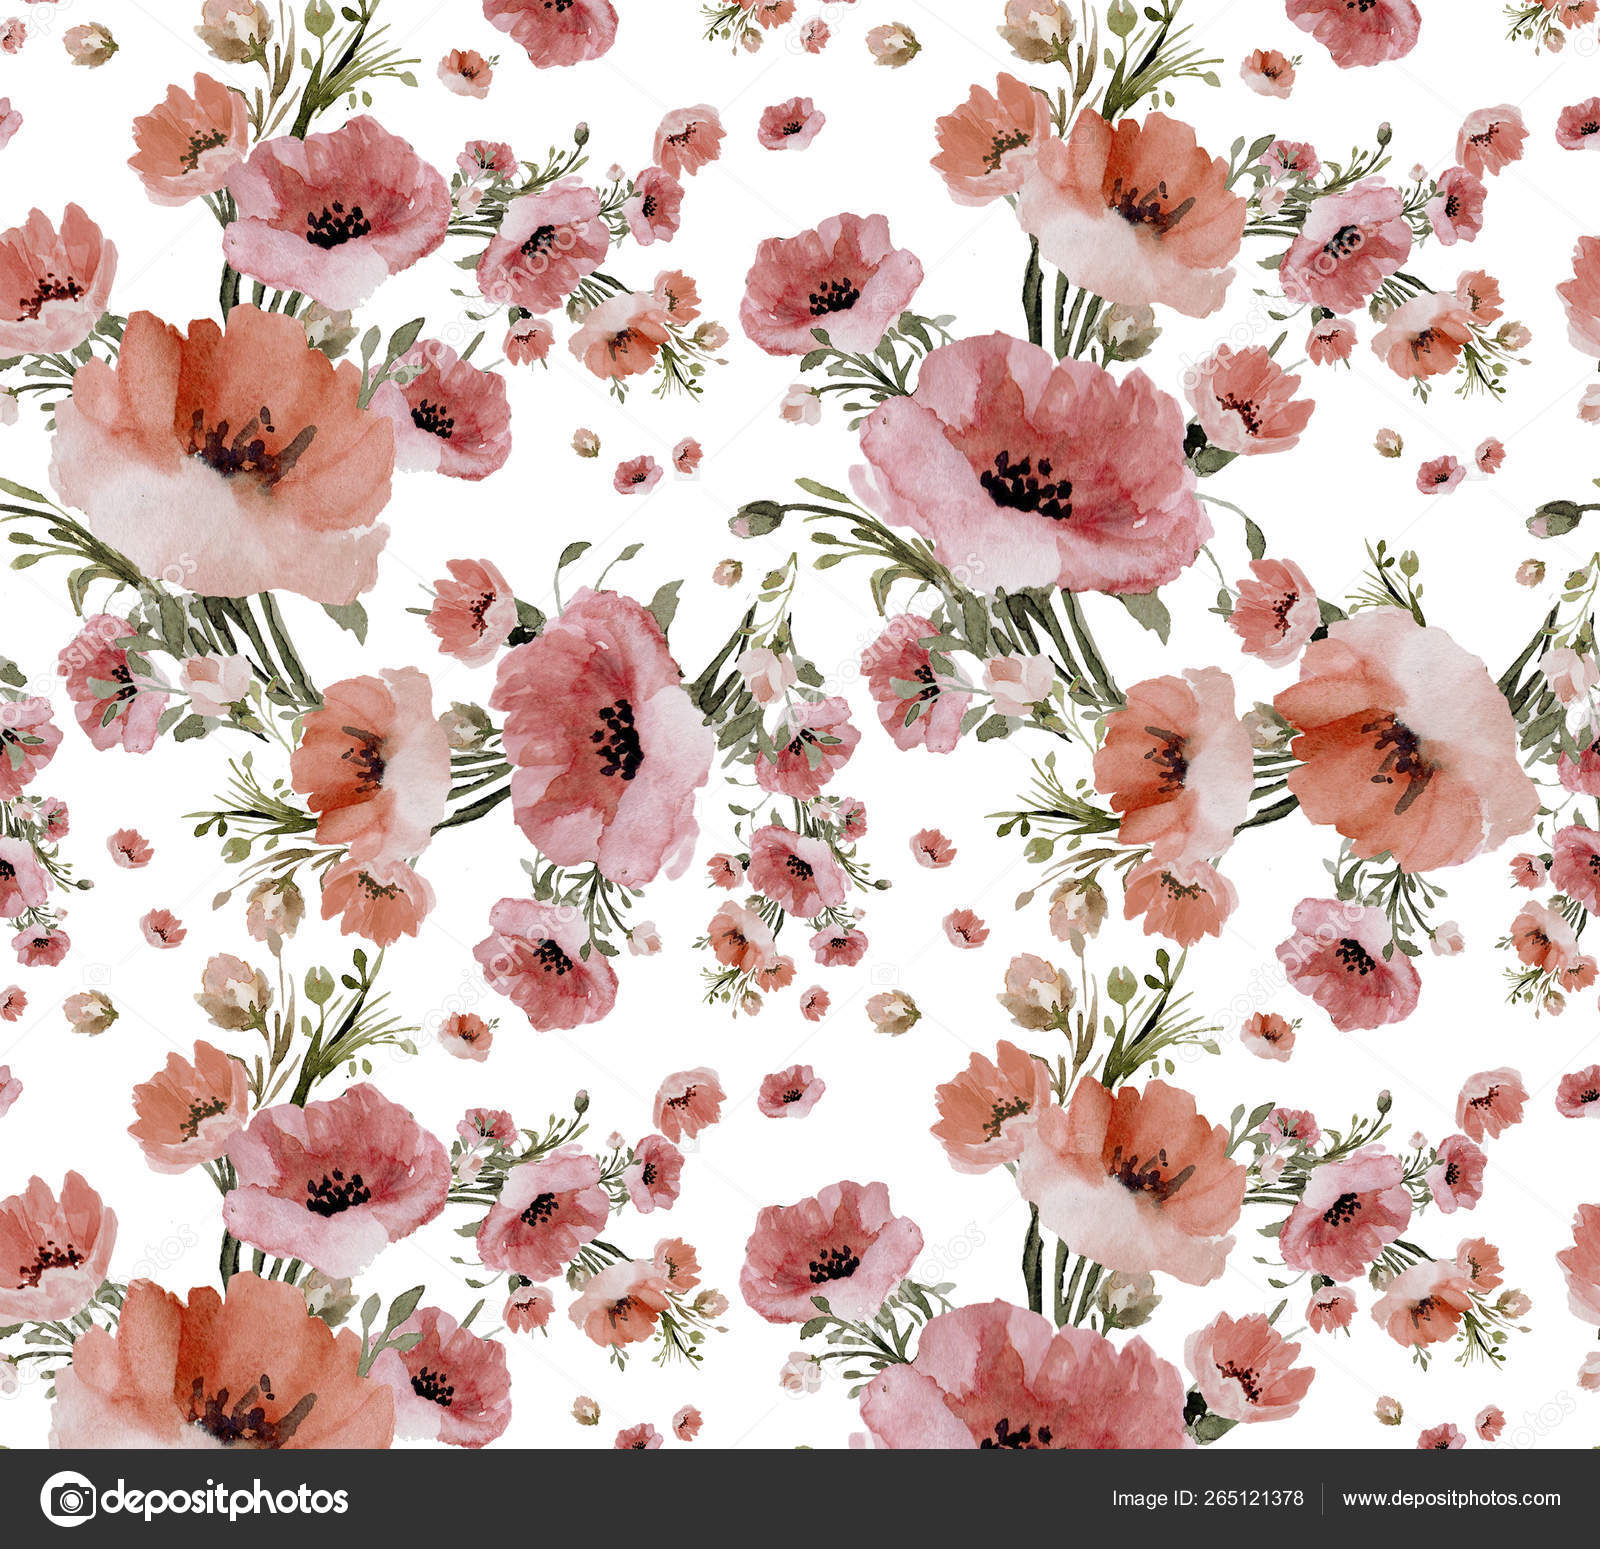 Wallpapers Floral Design Seamless Pattern High Resolution Stock Images, Photos, Reviews